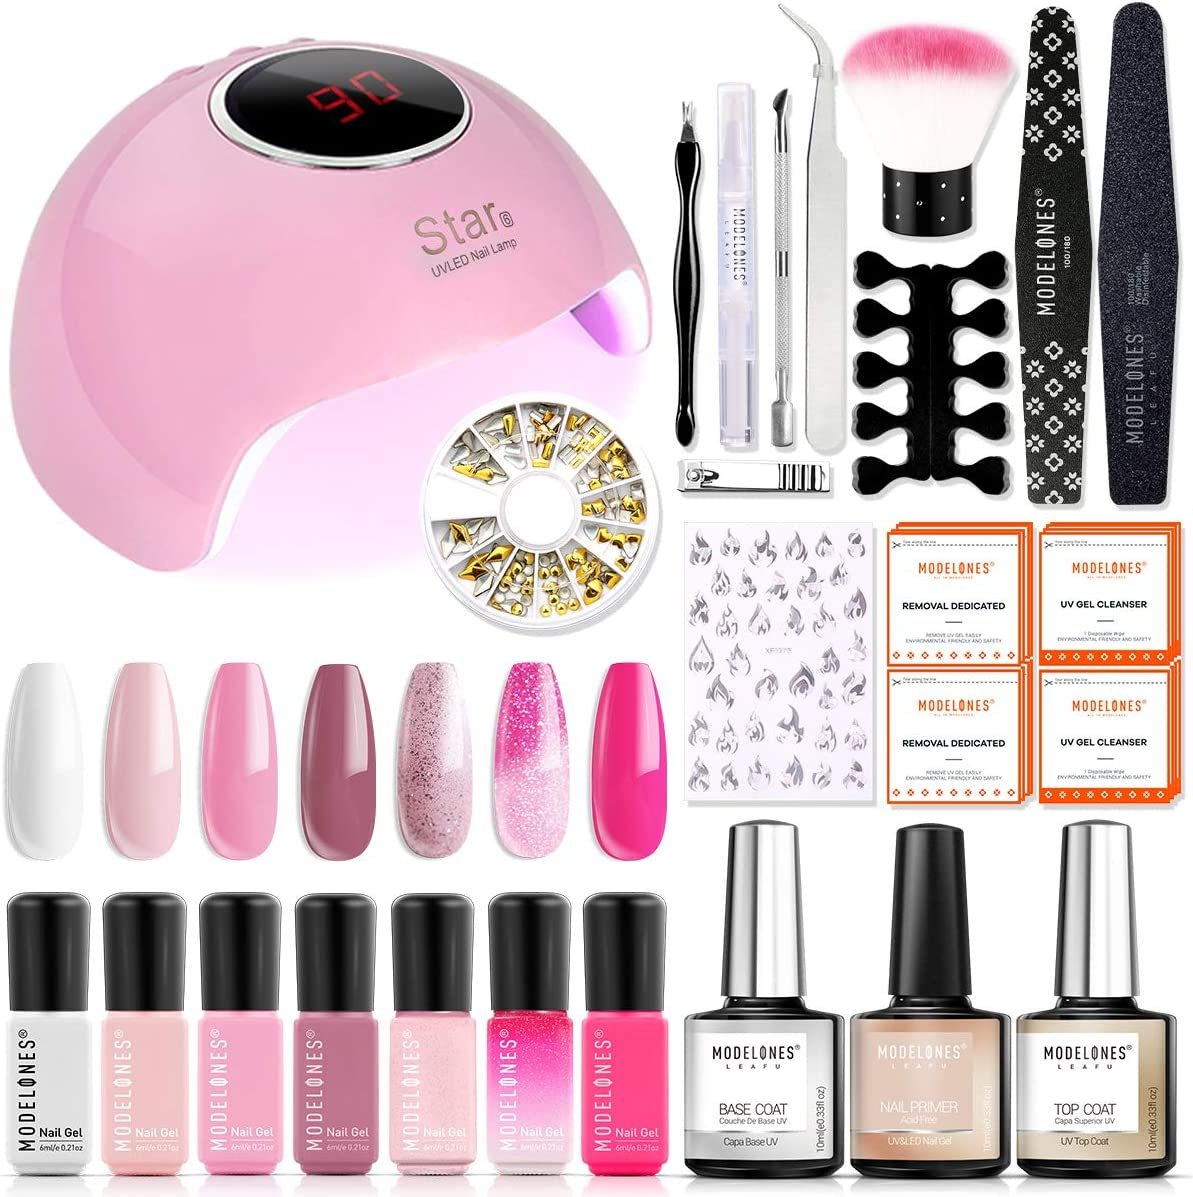 The Best Home Gel Nail Kits For Shellac